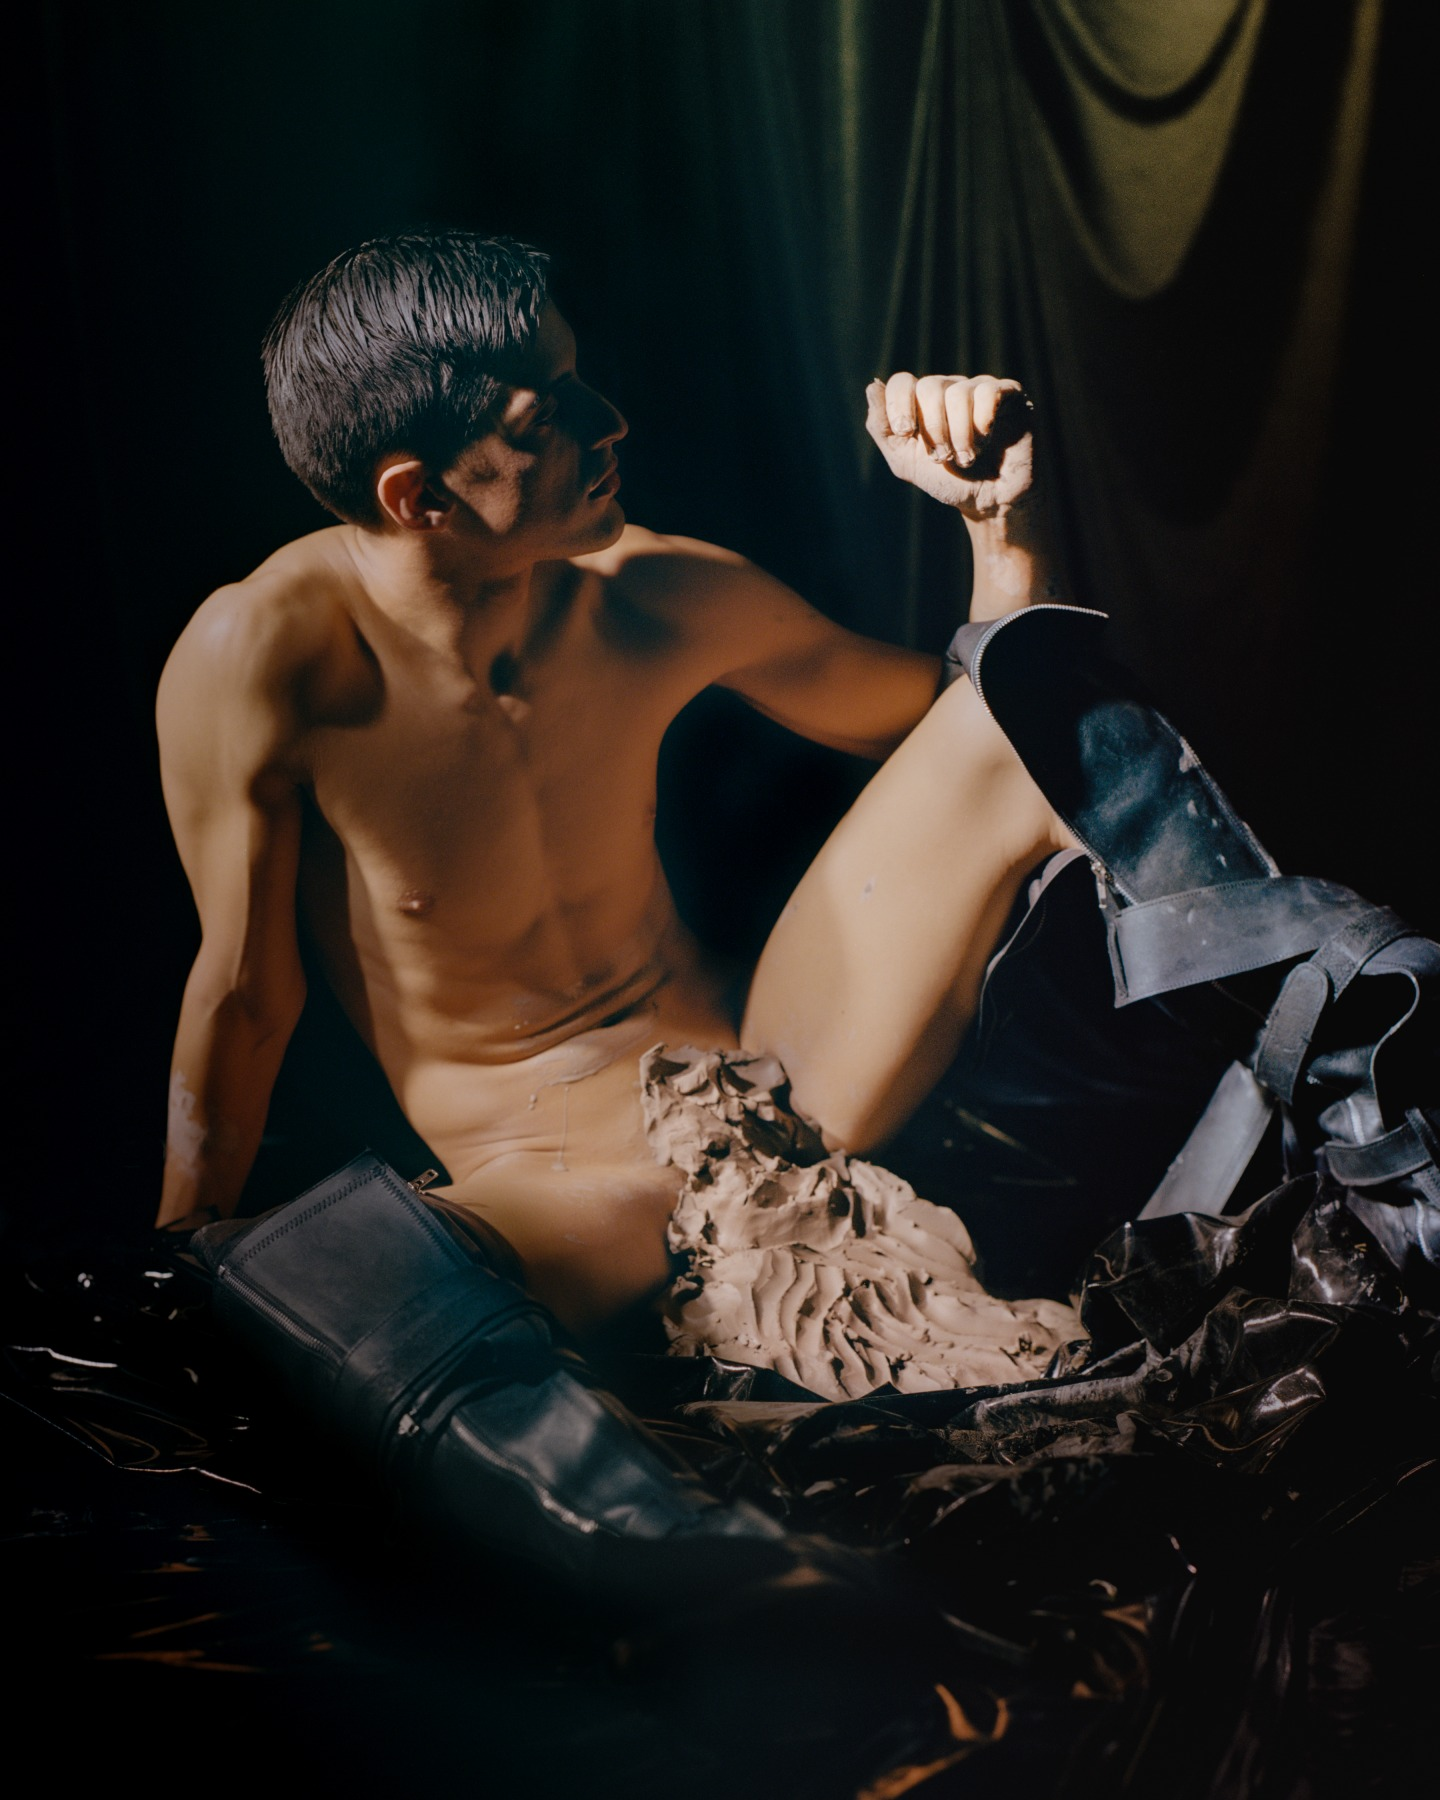 Arca's Brilliantly Queer New Album Gets Off On Pushing Buttons